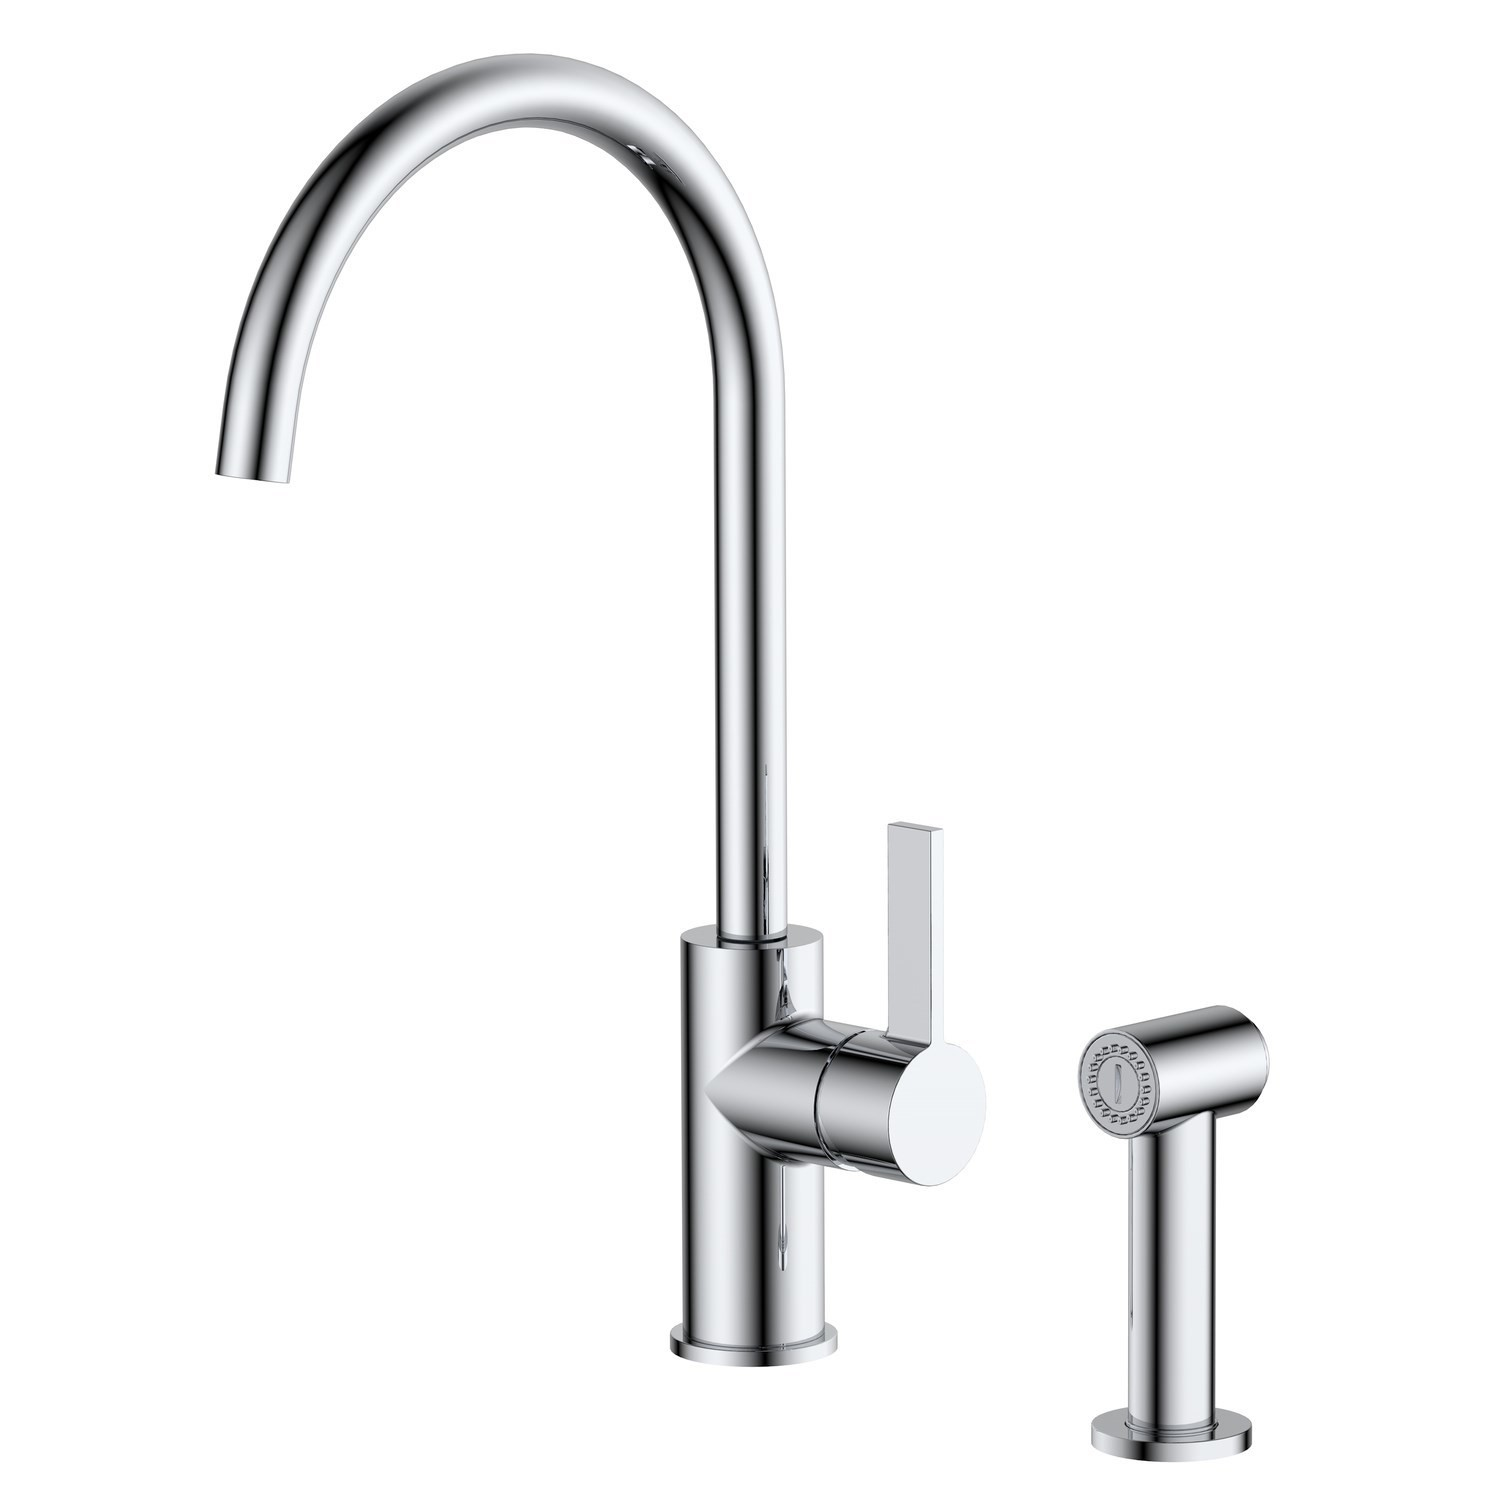 Plumbing Tools Taylor & Moore Kitchen Sink Mixer with Pull Out Spray Tap